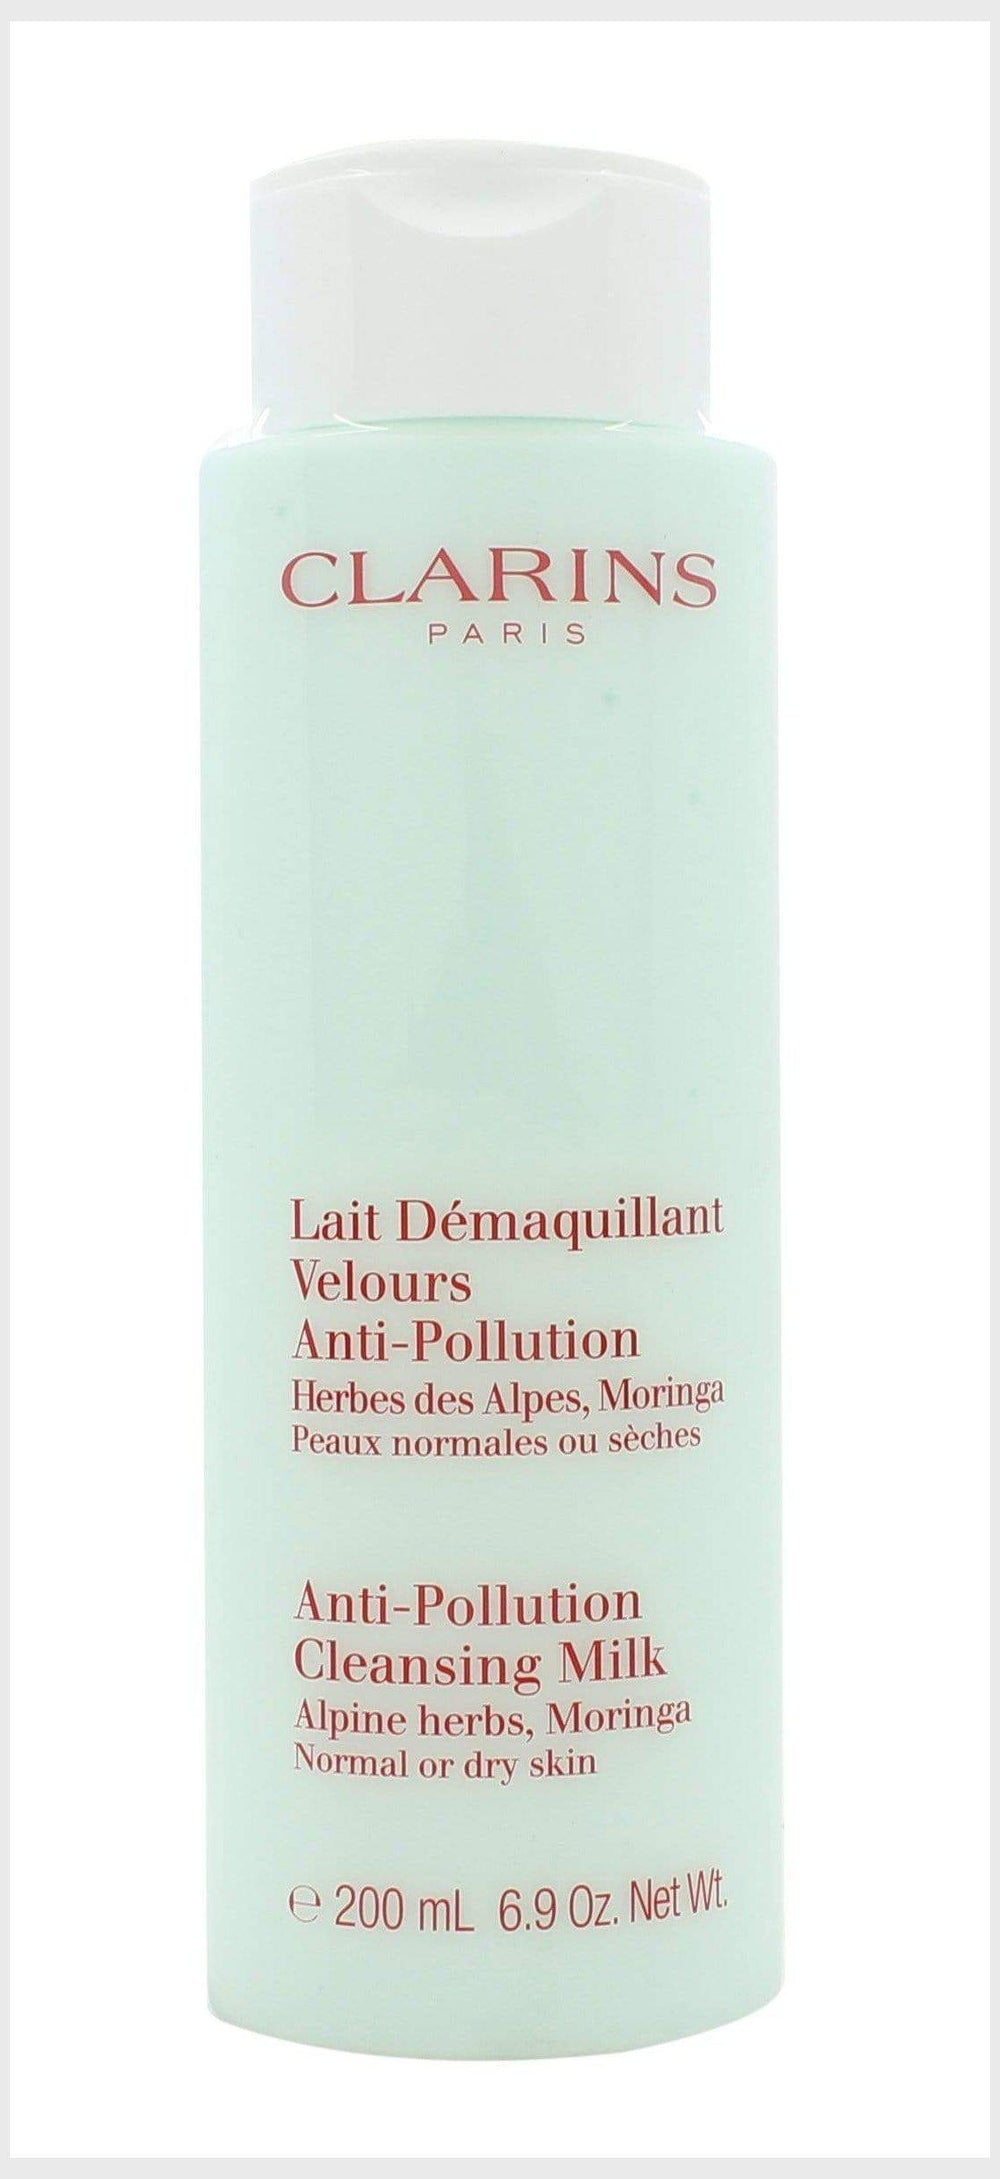 Clarins Anti-Pollution Cleansing Milk with Alpine Herbs 200ml - Dry/Normal Skin - Clarins - Cleansing Milk - TheLifestyleHut